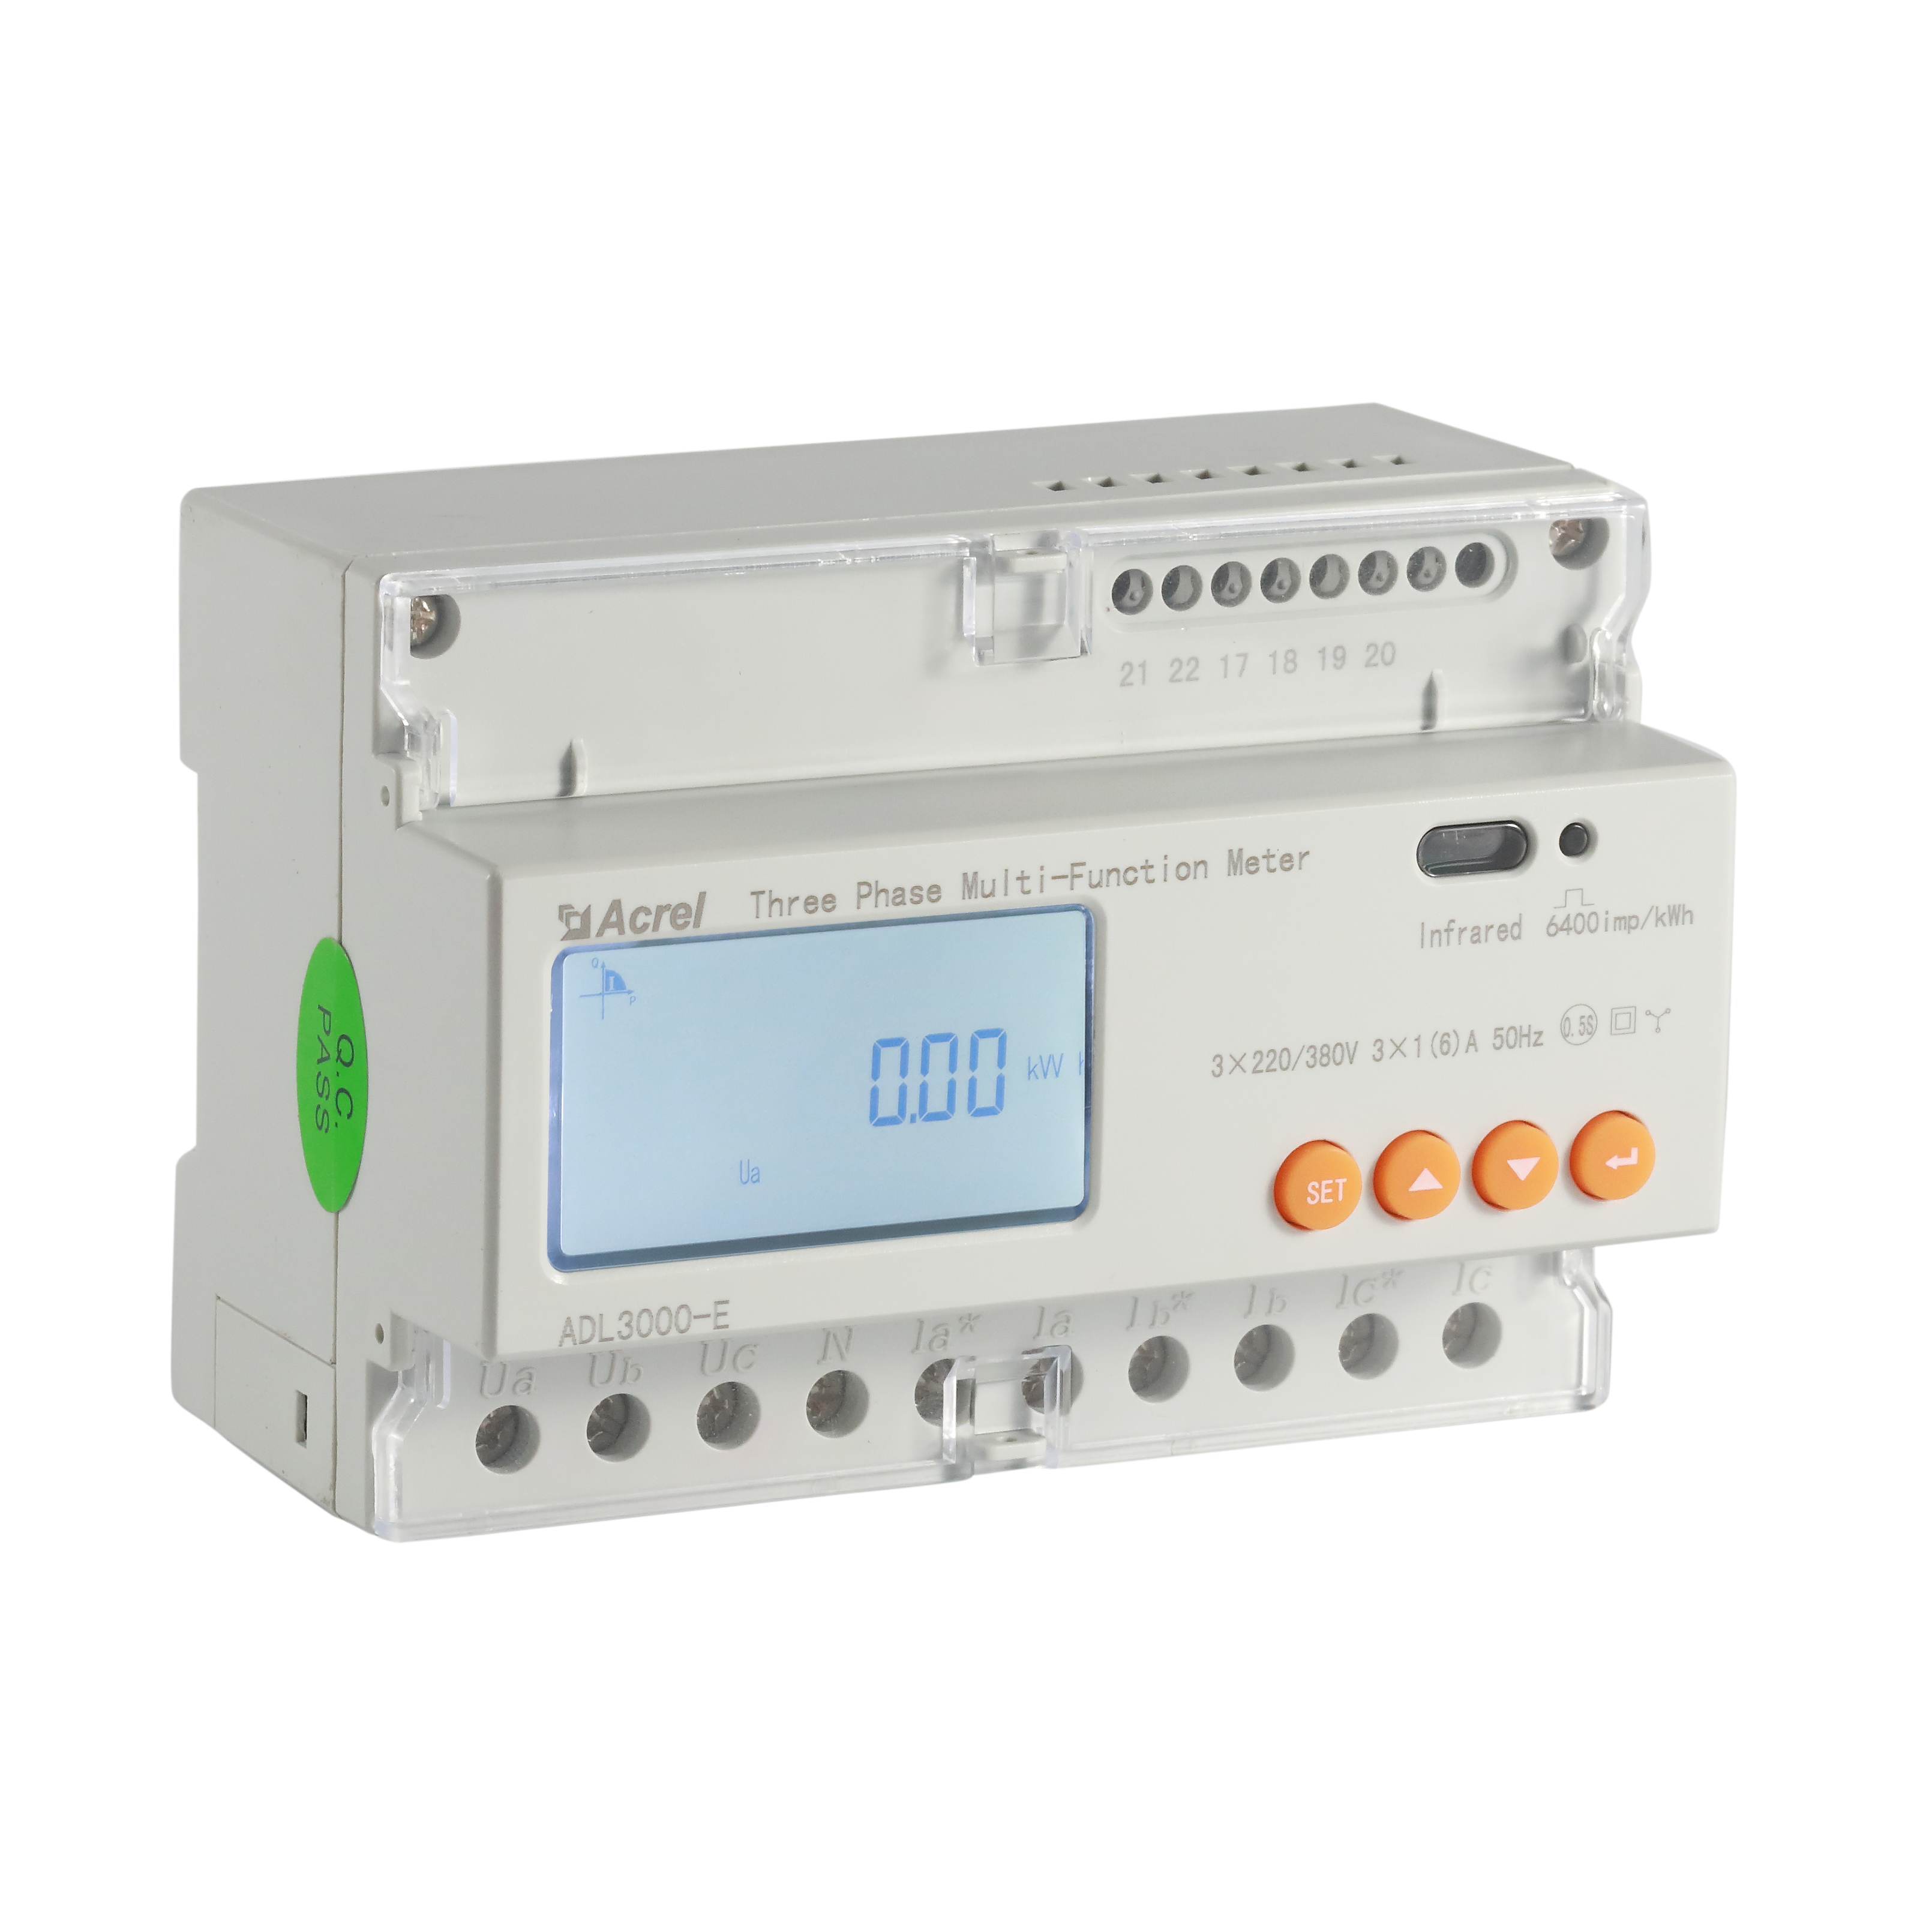 Acrel 300286.SZ 7 module din rail 3 phase KWH energy meter modbus rtu ADL3000-E/<strong>C</strong> for solar PV power system